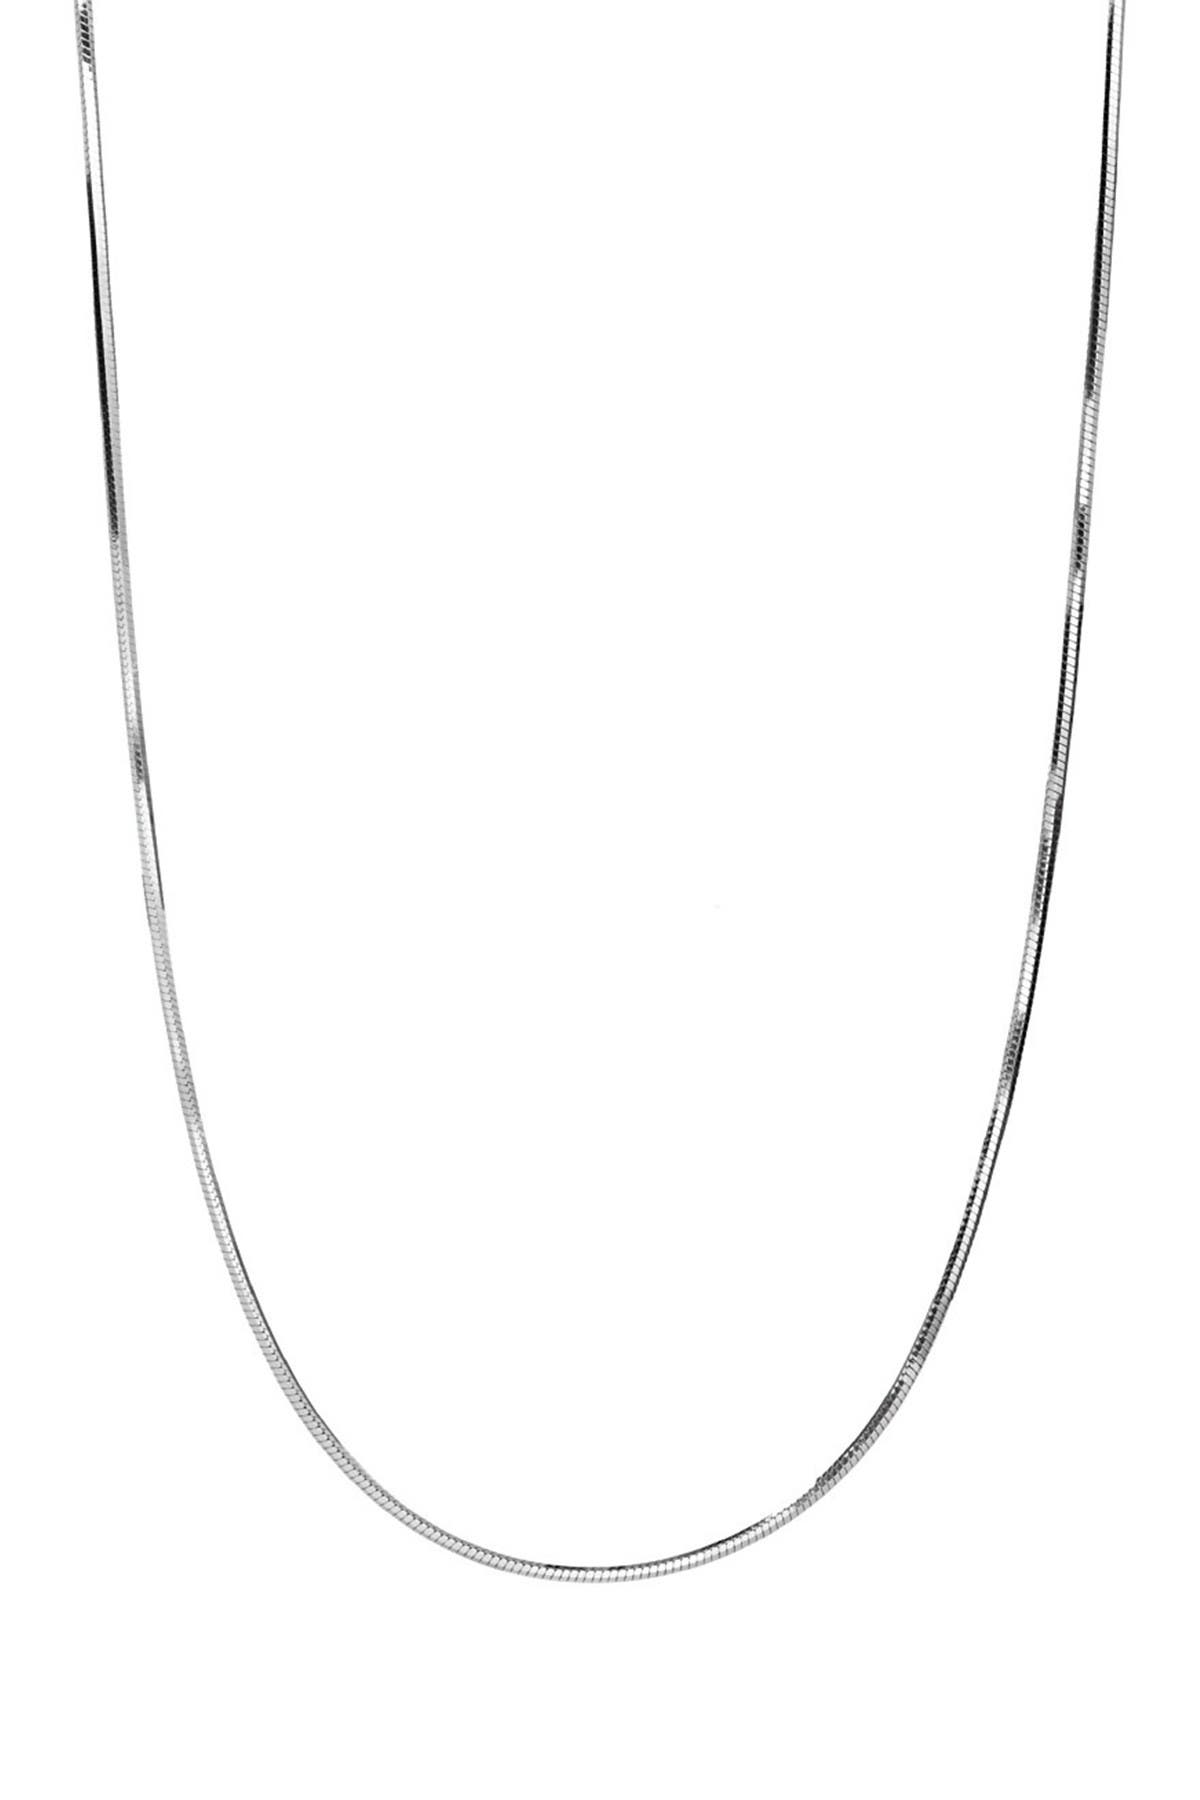 Image of Best Silver Inc. Sterling Silver Snake Chain Necklace